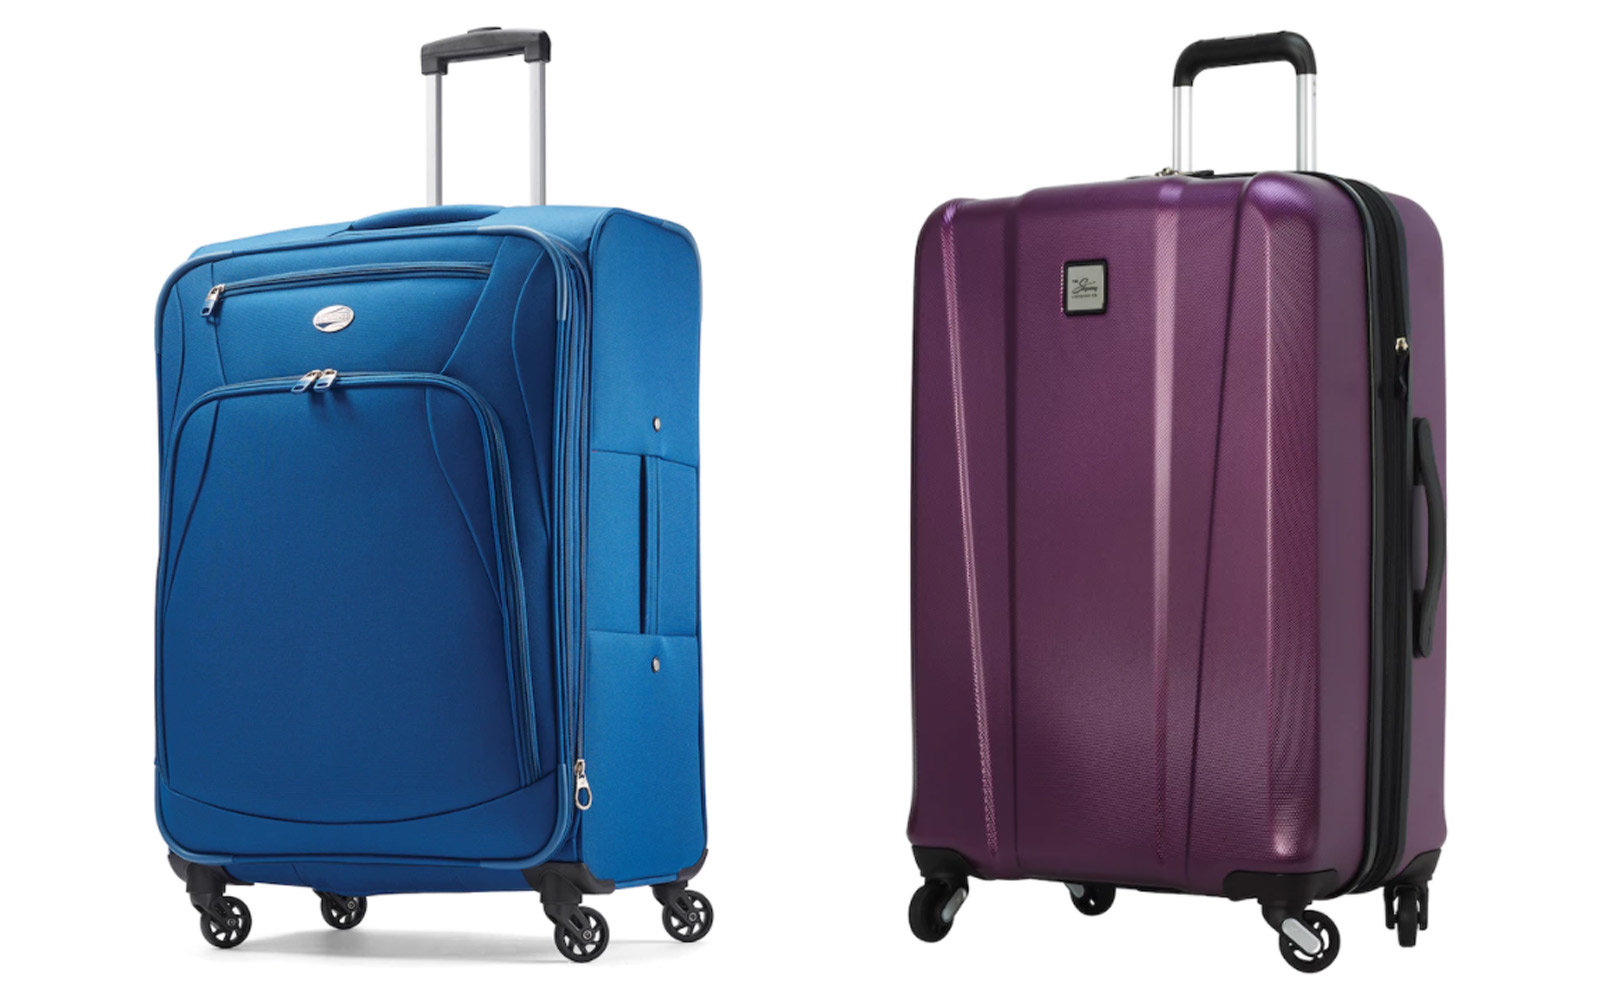 Get Up to 75% Off Luggage From Kohl s Online Black Friday Sale ... c2eeea2525